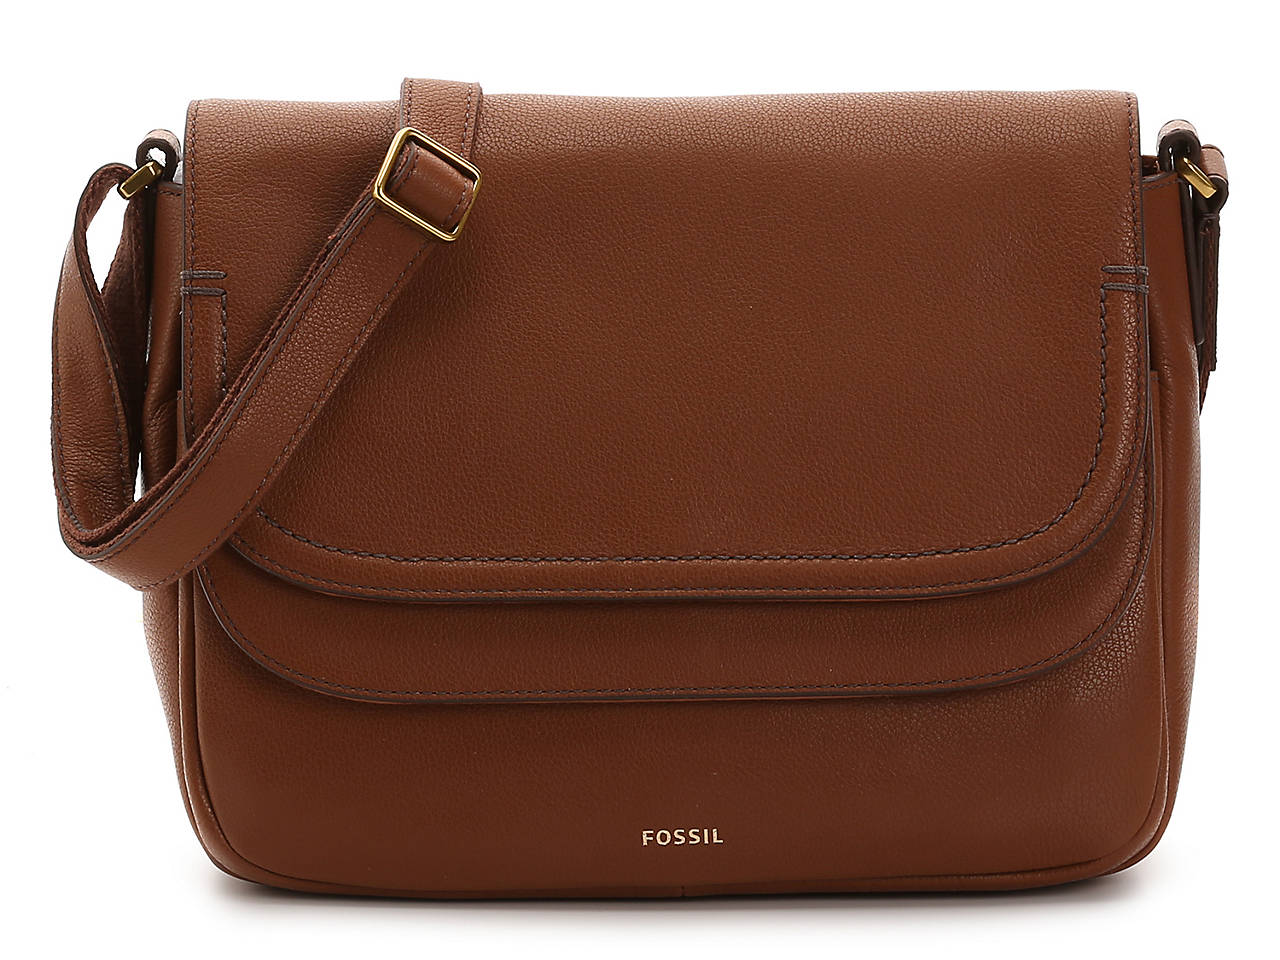 047d53ab3310 Fossil Peyton Leather Crossbody Bag Women's Handbags & Accessories | DSW